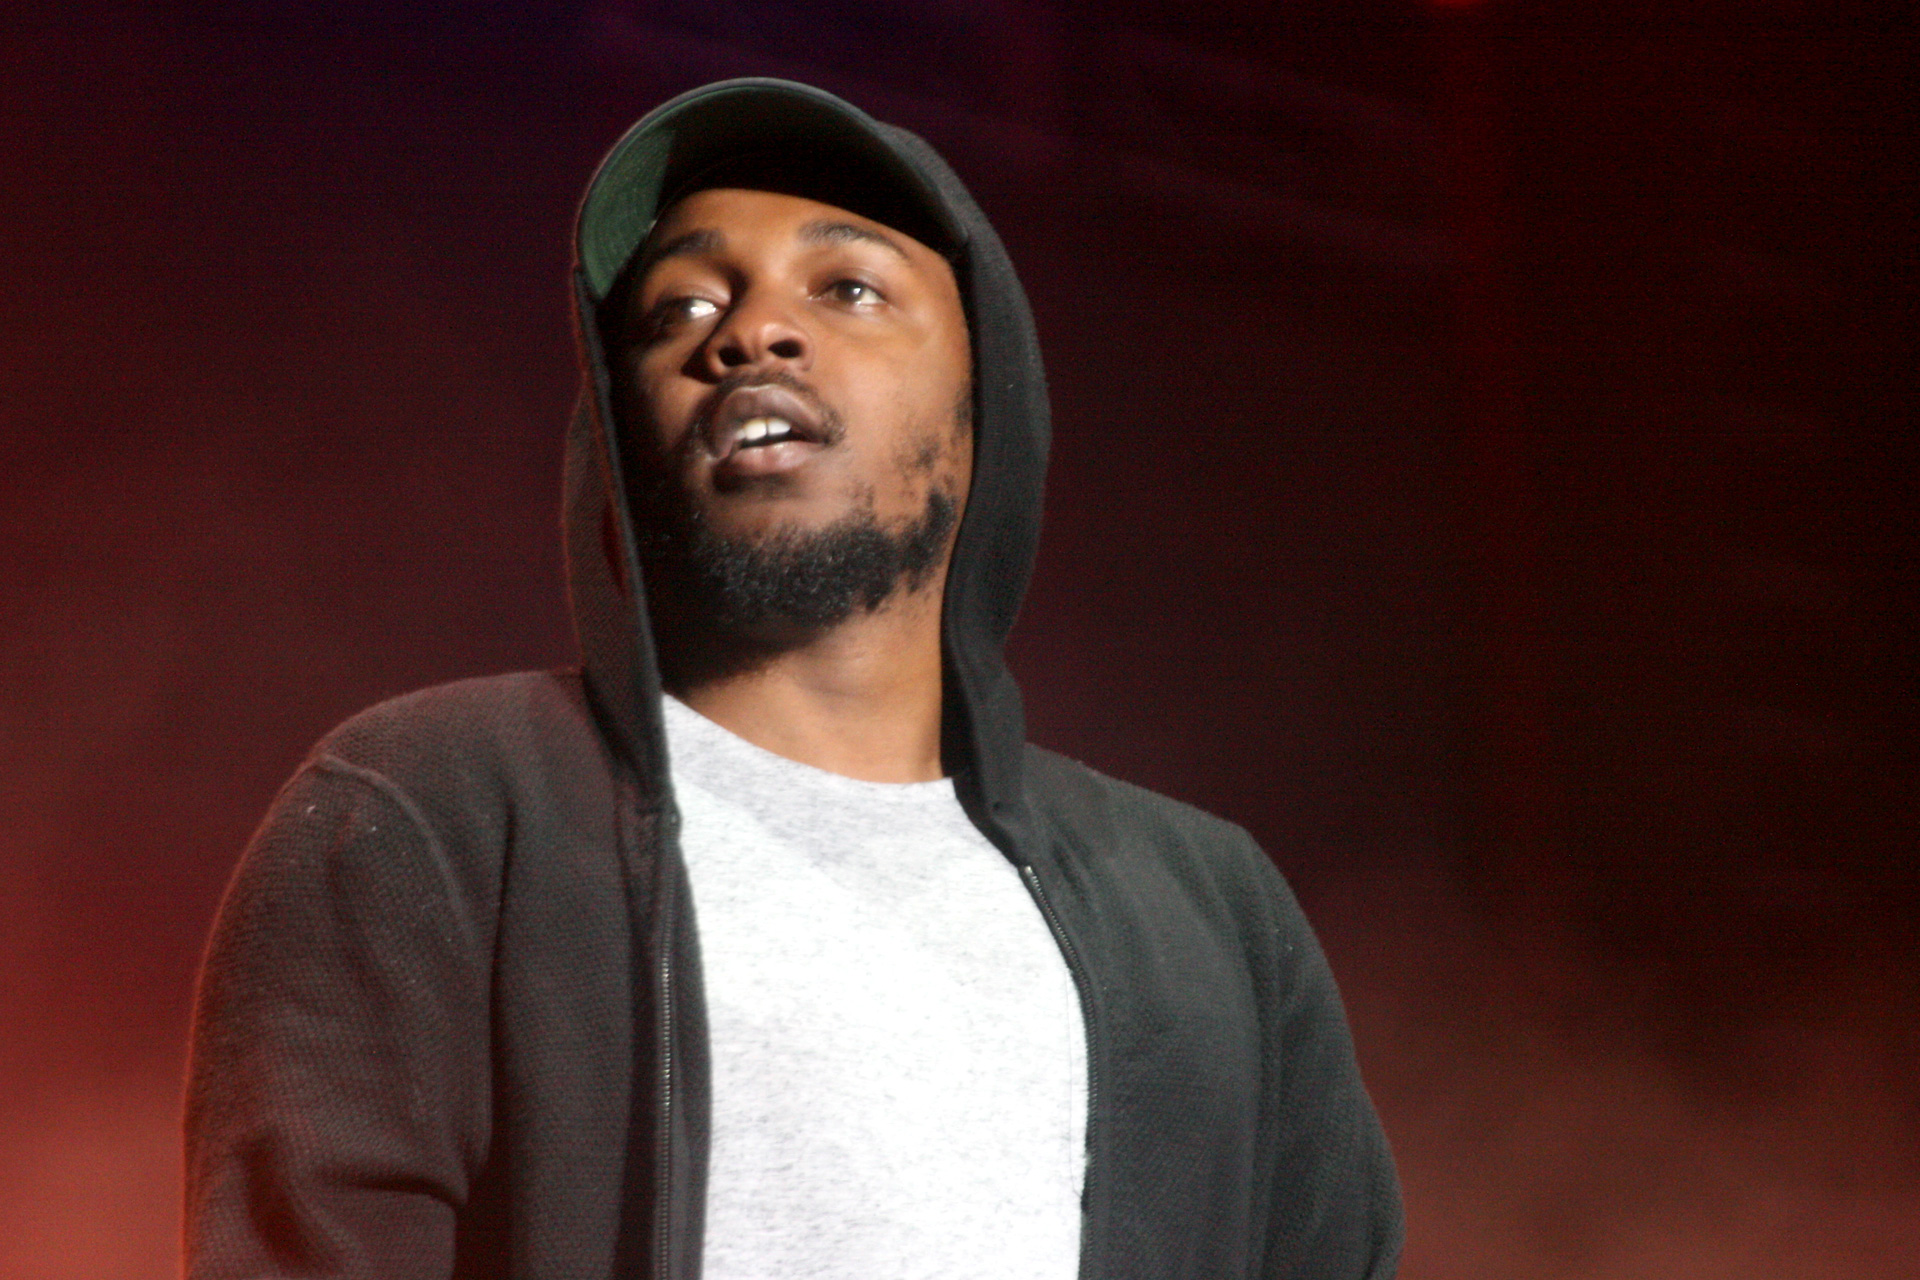 Kendrick Lamar performs at Outside Lands, Aug. 8, 2015. (Photo: Gabe Meline/KQED)